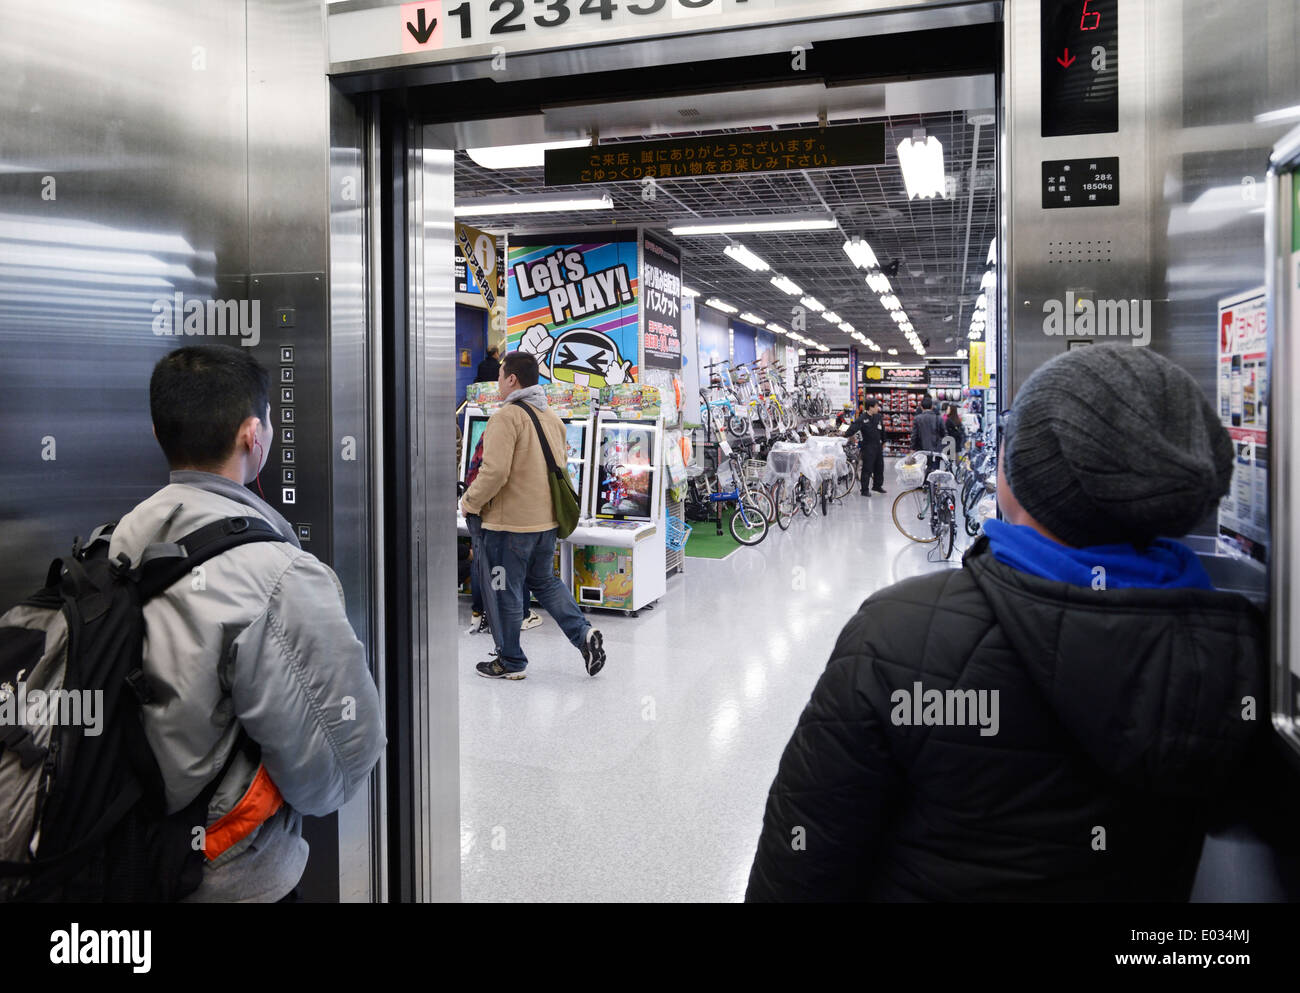 People inside an elevator in a store in Tokyo, Japan - Stock Image